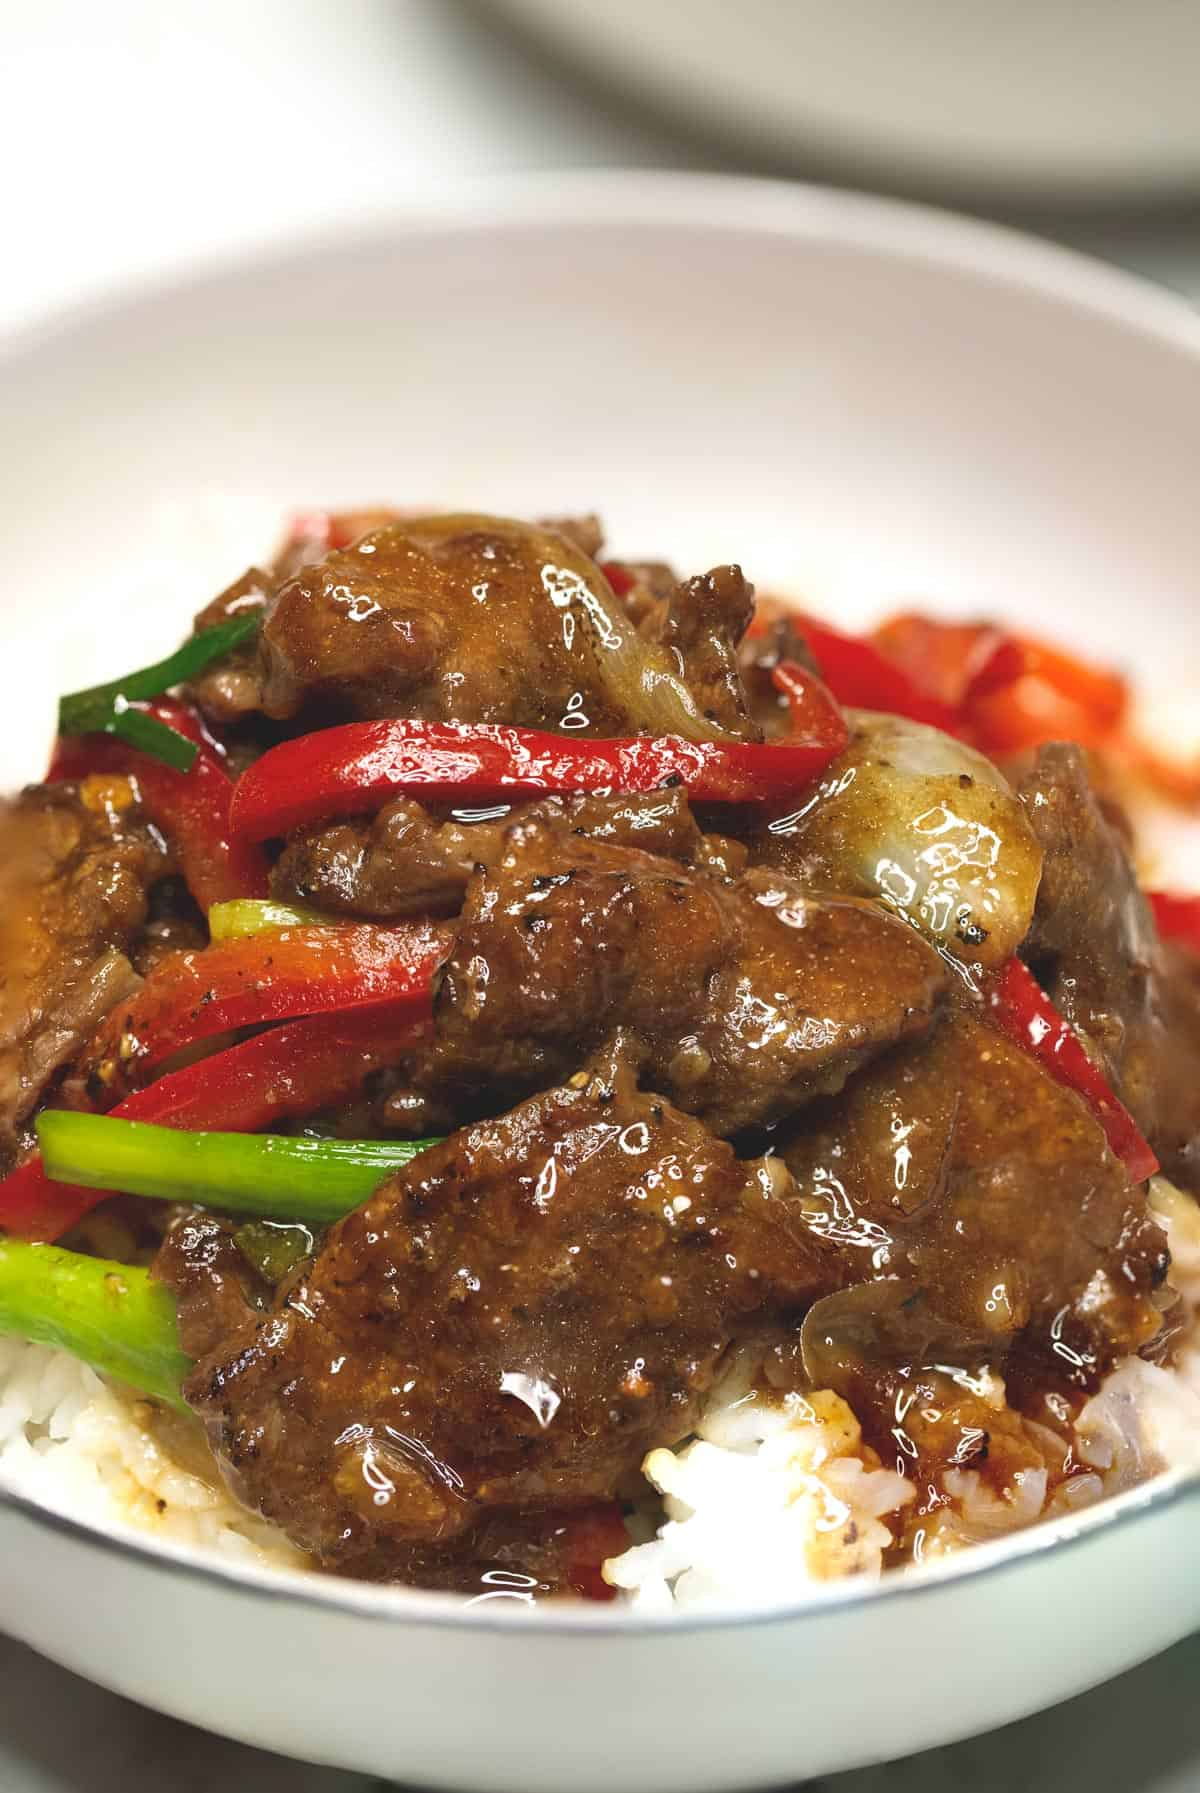 A serving of beef stir fry with onions and peppers over rive in a bowl.